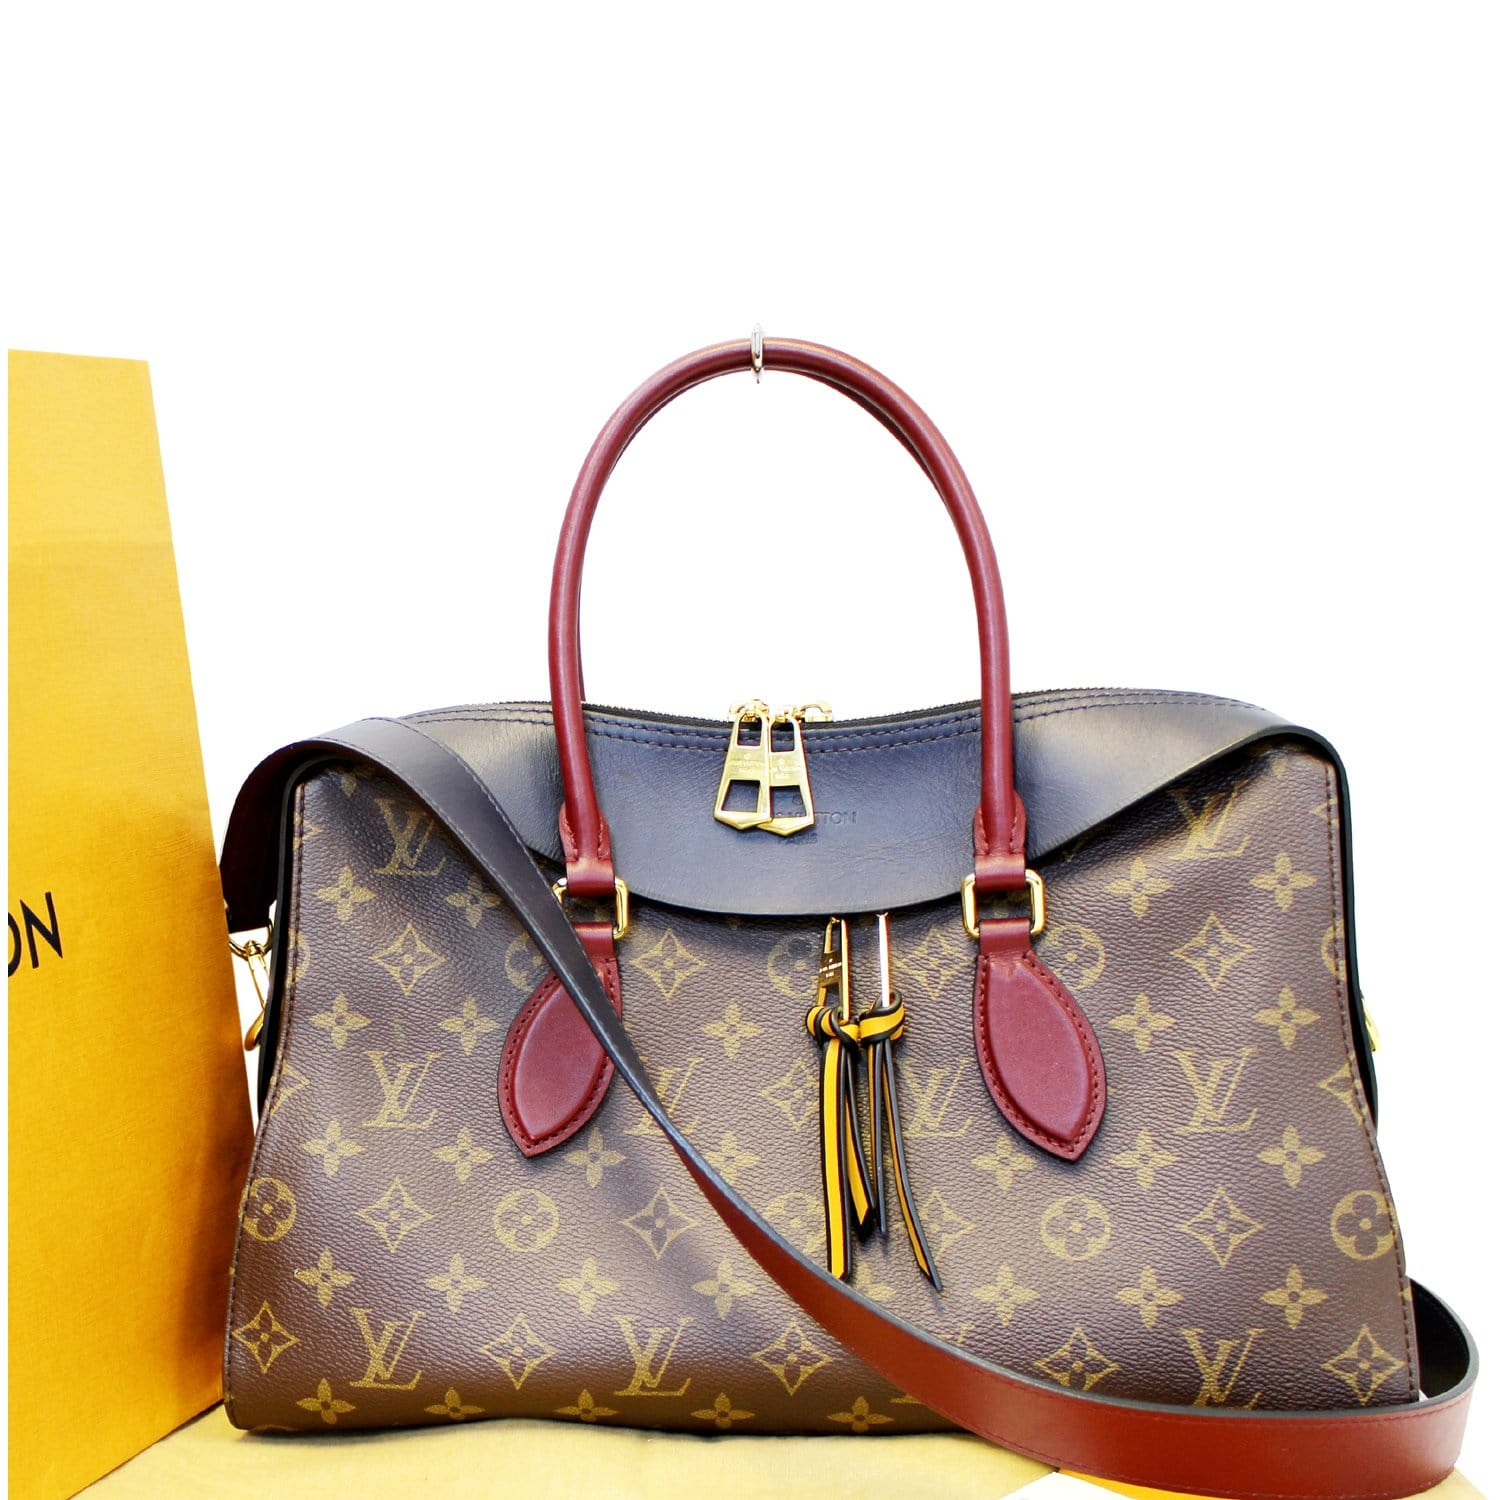 3159858b6521 LOUIS VUITTON Tuileries Monogram Canvas Tote Shoulder Bag-US